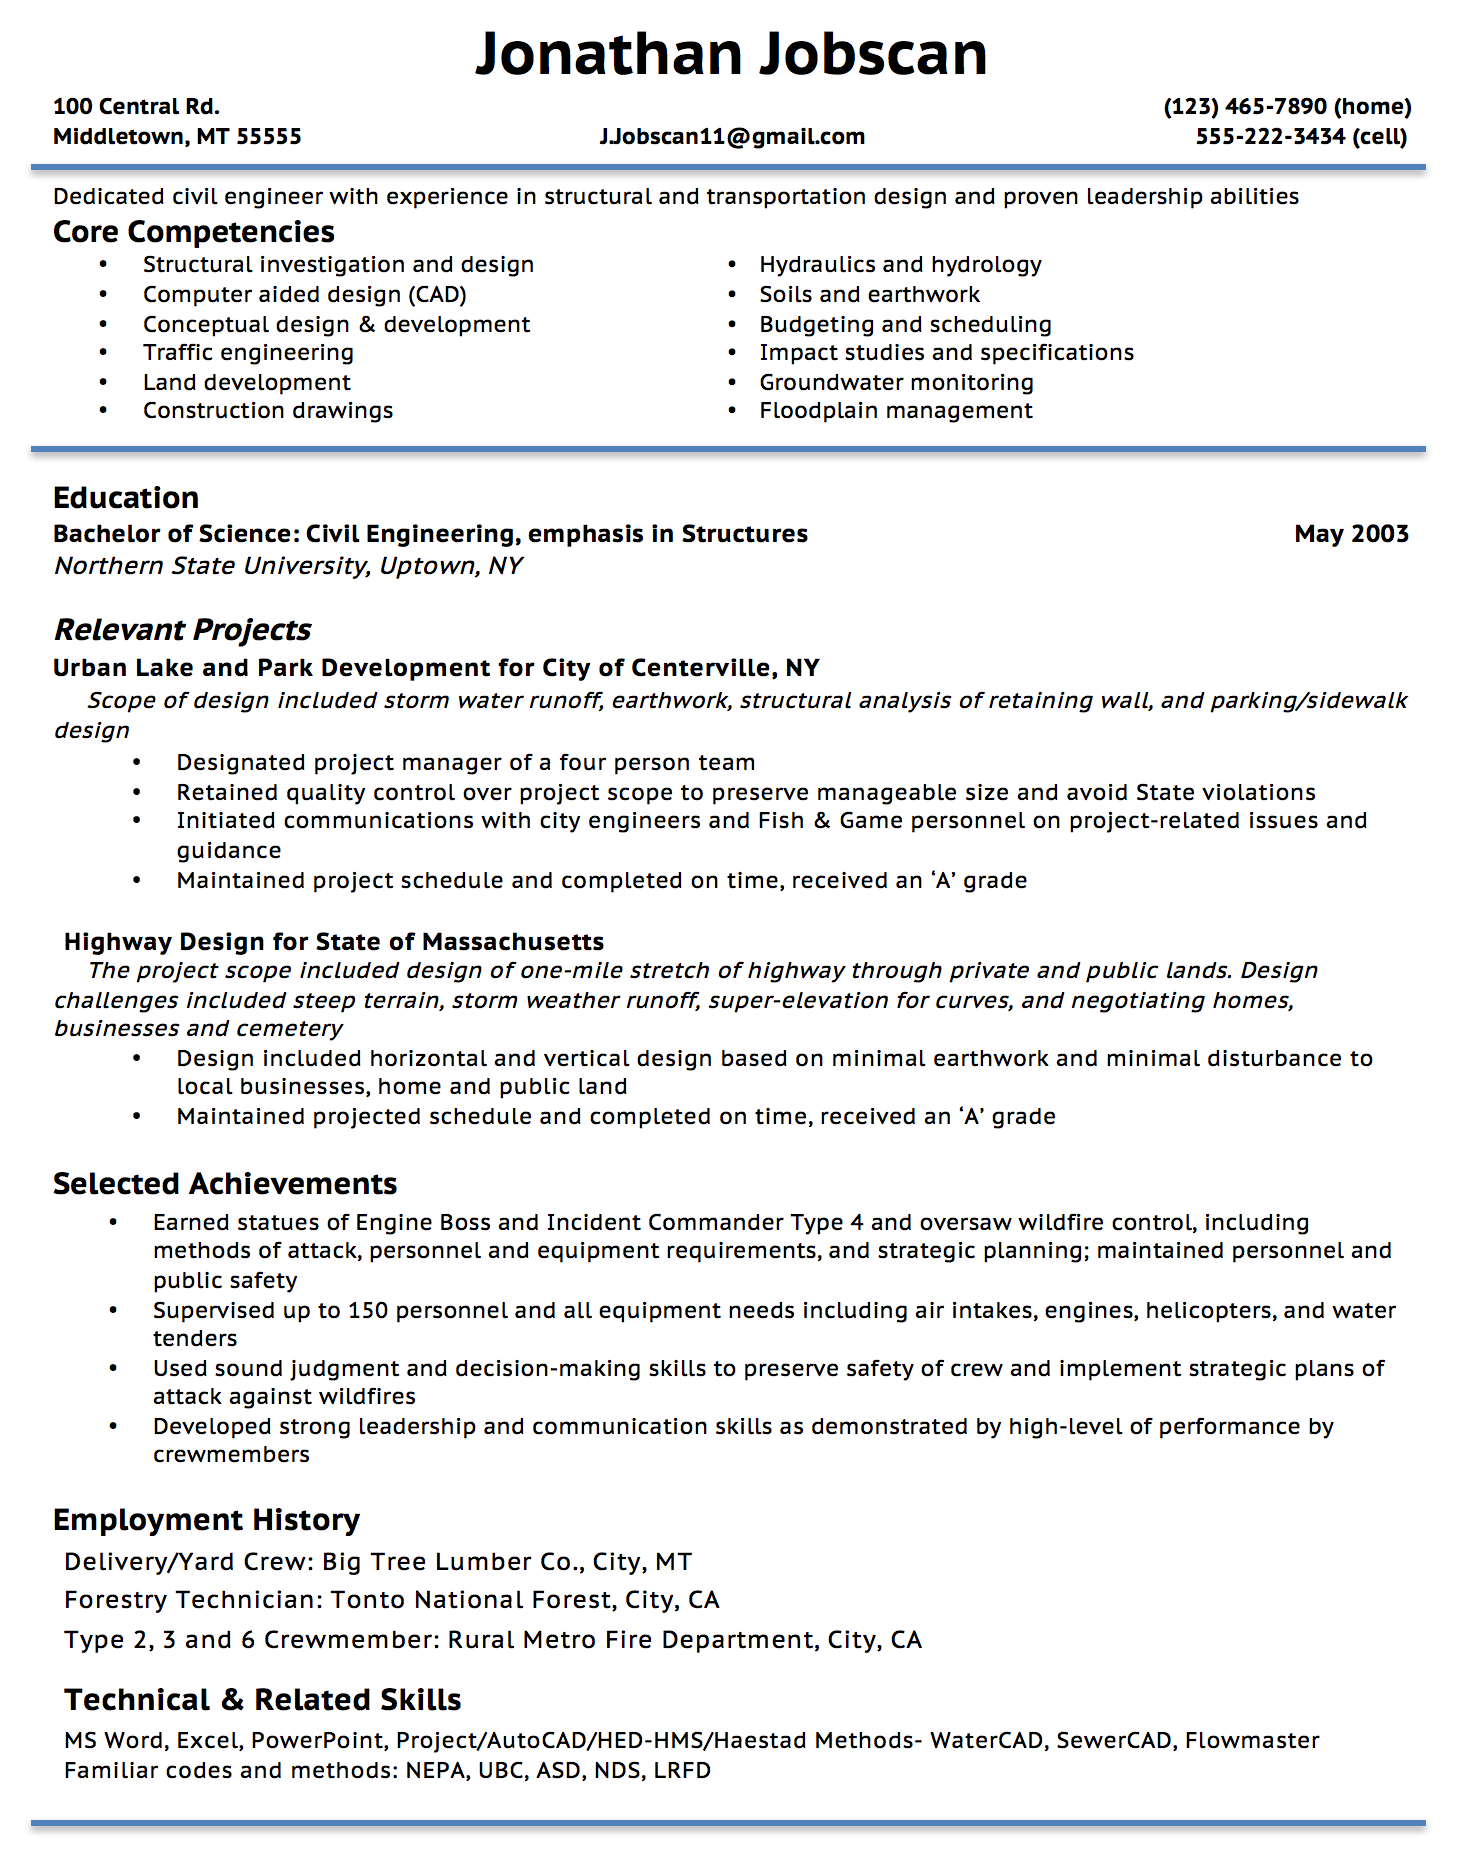 Opposenewapstandardsus  Pleasant Resume Writing Guide  Jobscan With Hot Example Of A Functional Resume Format With Easy On The Eye Resume Text Also Email Resume Subject In Addition Clerical Duties Resume And Call Center Customer Service Representative Resume As Well As Entry Level Business Analyst Resume Sample Additionally Child Care Director Resume From Jobscanco With Opposenewapstandardsus  Hot Resume Writing Guide  Jobscan With Easy On The Eye Example Of A Functional Resume Format And Pleasant Resume Text Also Email Resume Subject In Addition Clerical Duties Resume From Jobscanco